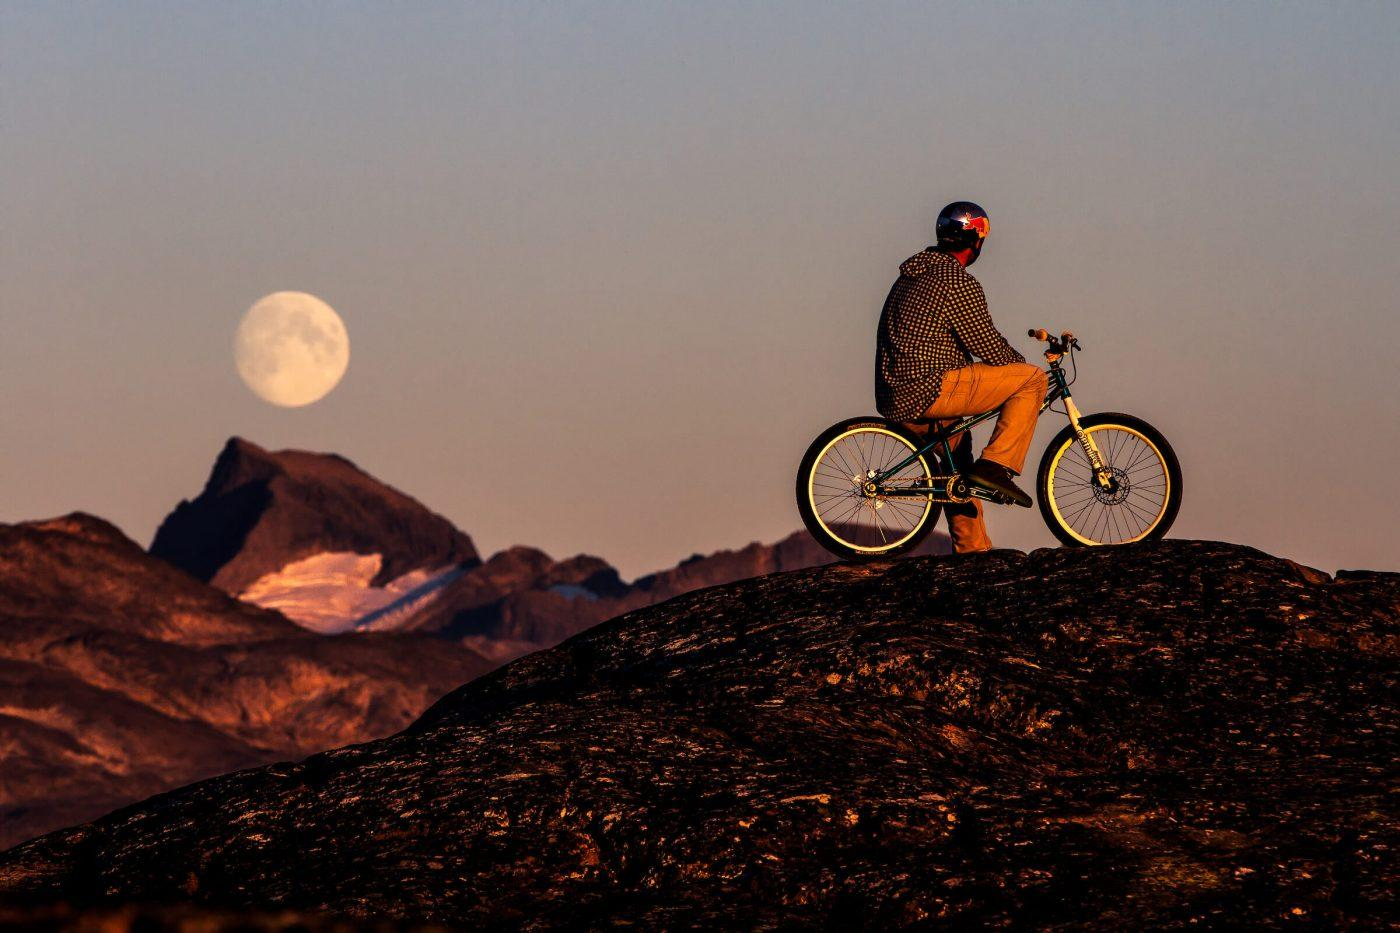 Red Bull trial biker Petr Kraus and the full moon at sunset in Kangaamiut in Greenland. By Mads Pihl